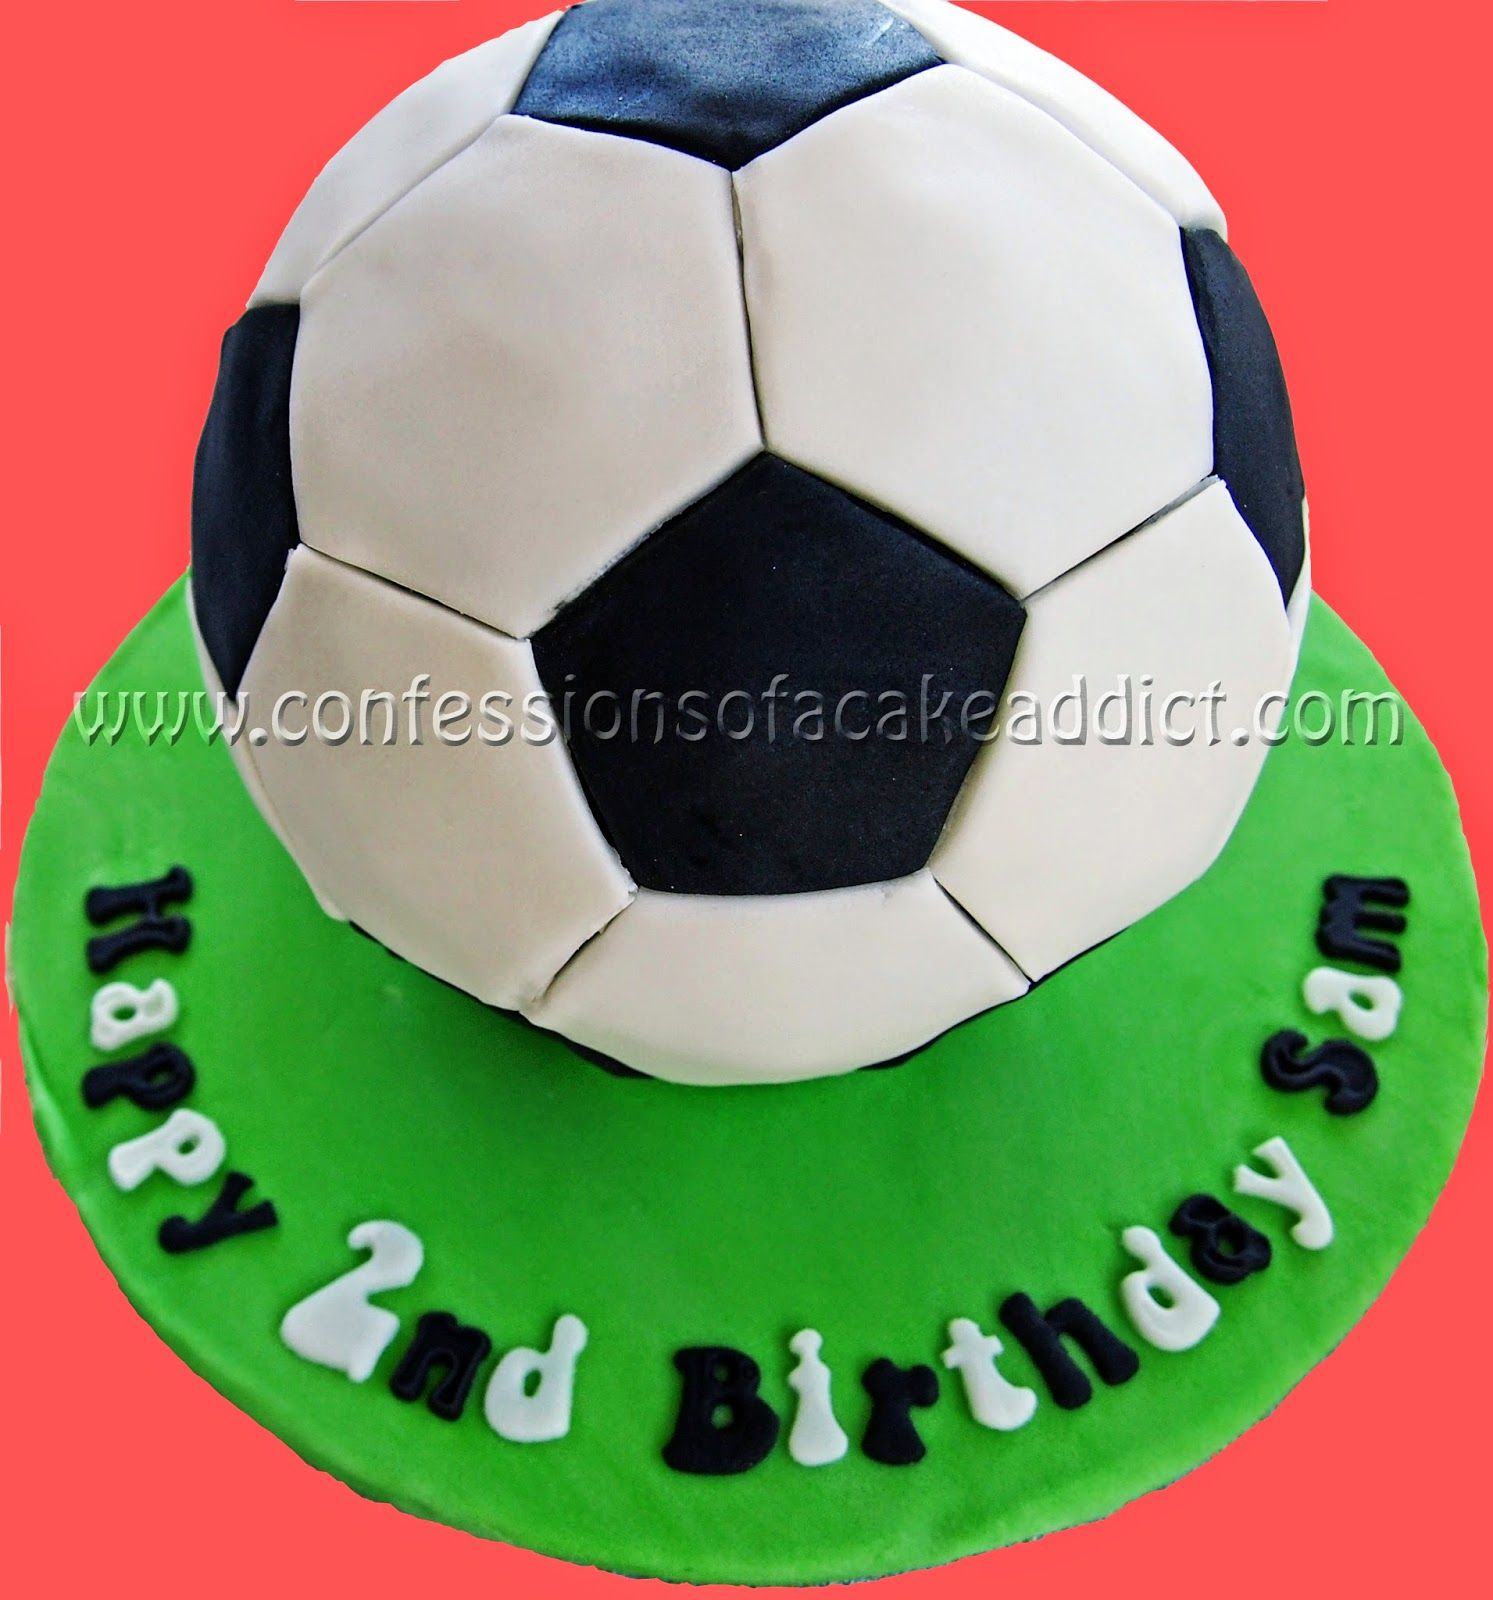 Last Weekend I Got To Try Another Very Fun Cake Design A Soccer Ball Cake For My Best Friend S 2 Year Old S Birt Soccer Ball Cake Soccer Cake Football Cake